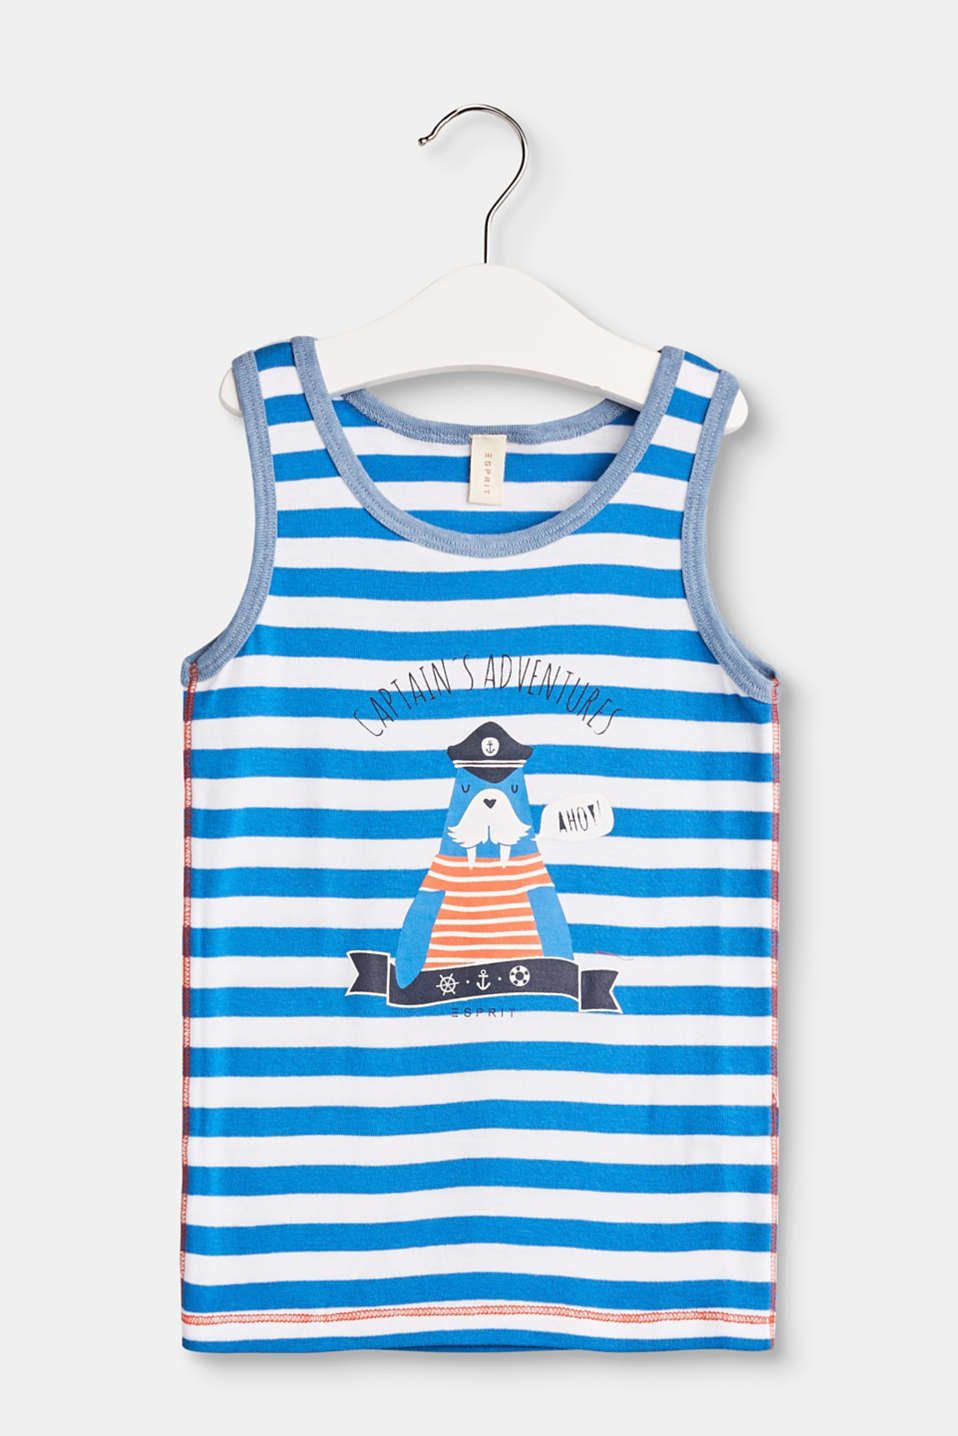 Ahoy! This striped cotton top with a seal print and tonal welts is just the thing for little explorers